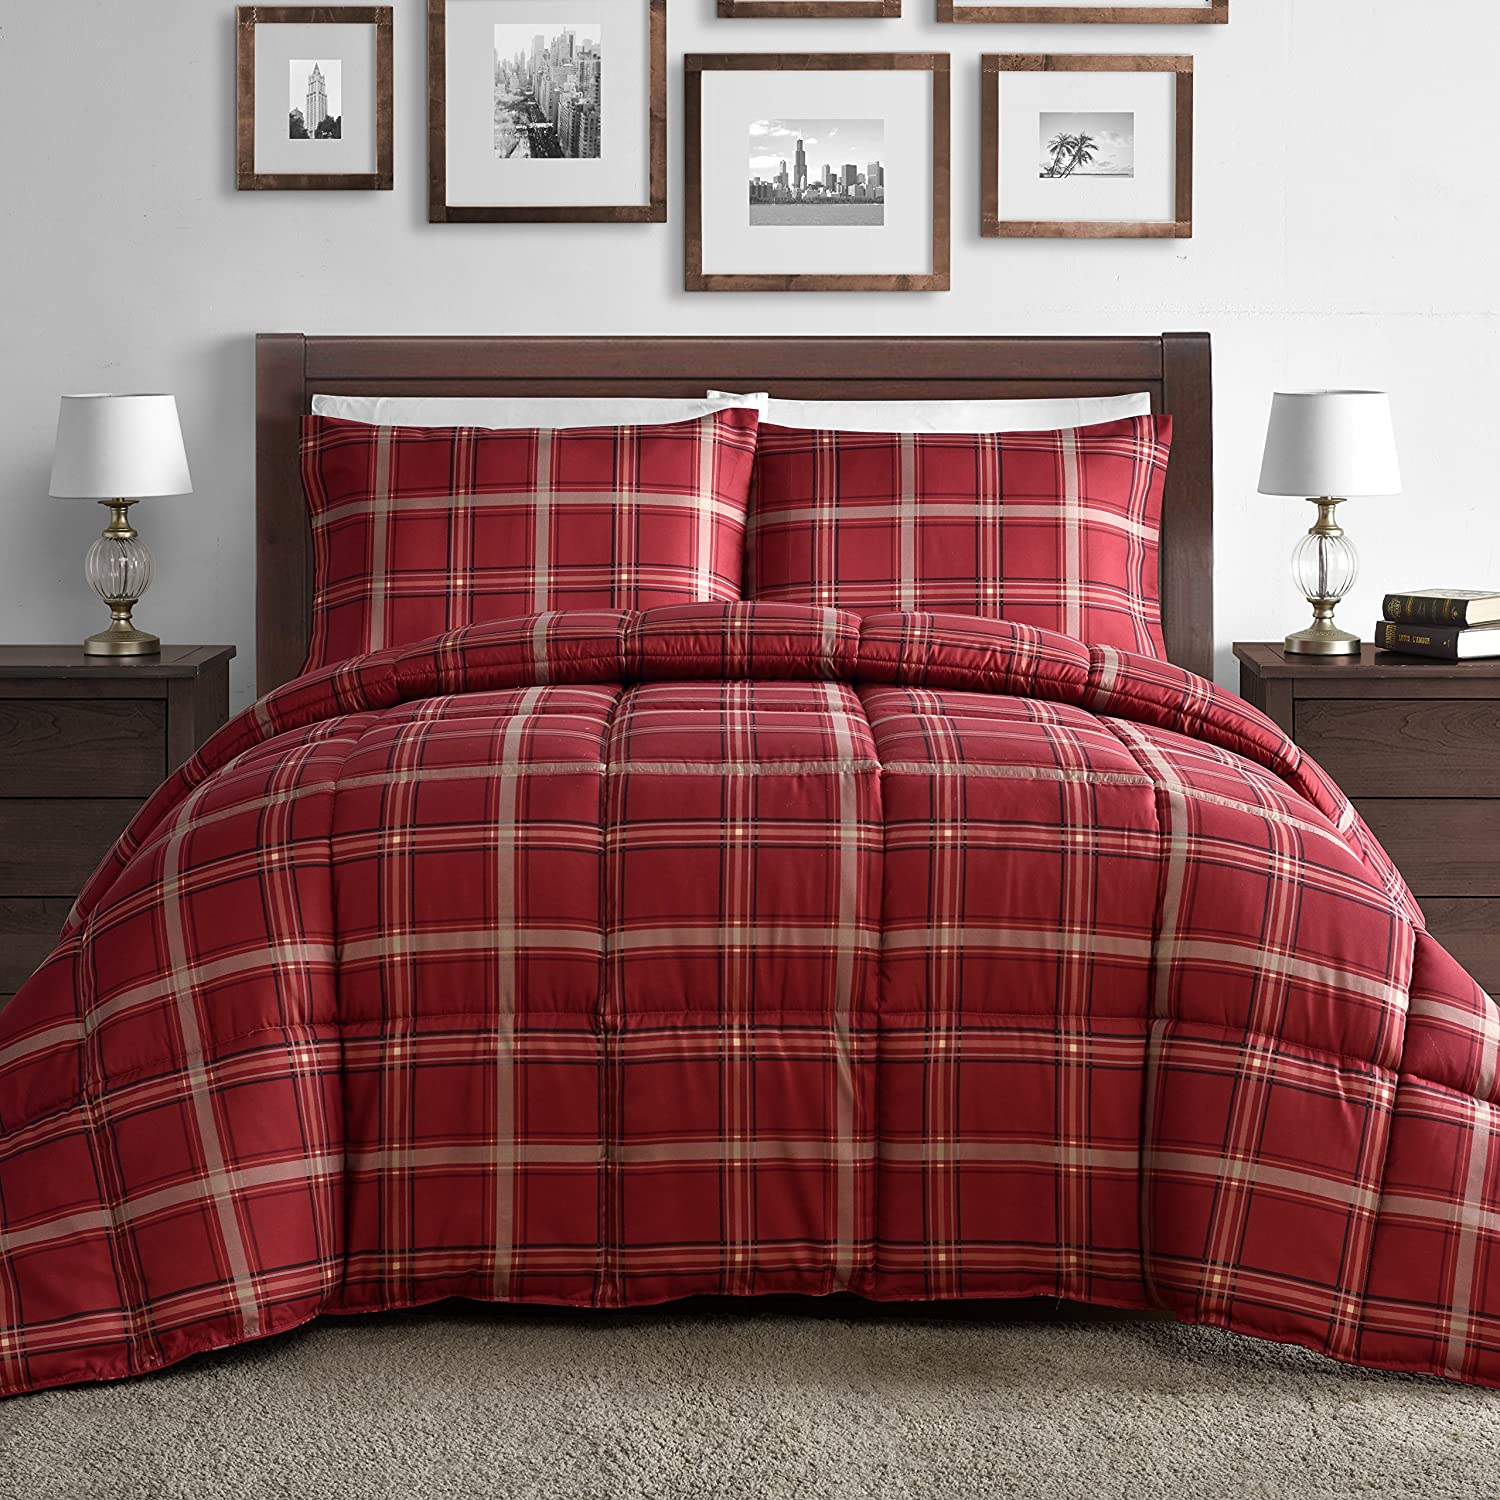 Ranking TOP3 2021 autumn and winter new Comfy Bedding Luxurious Rose Red 3 Piece Plaid Down Alternative